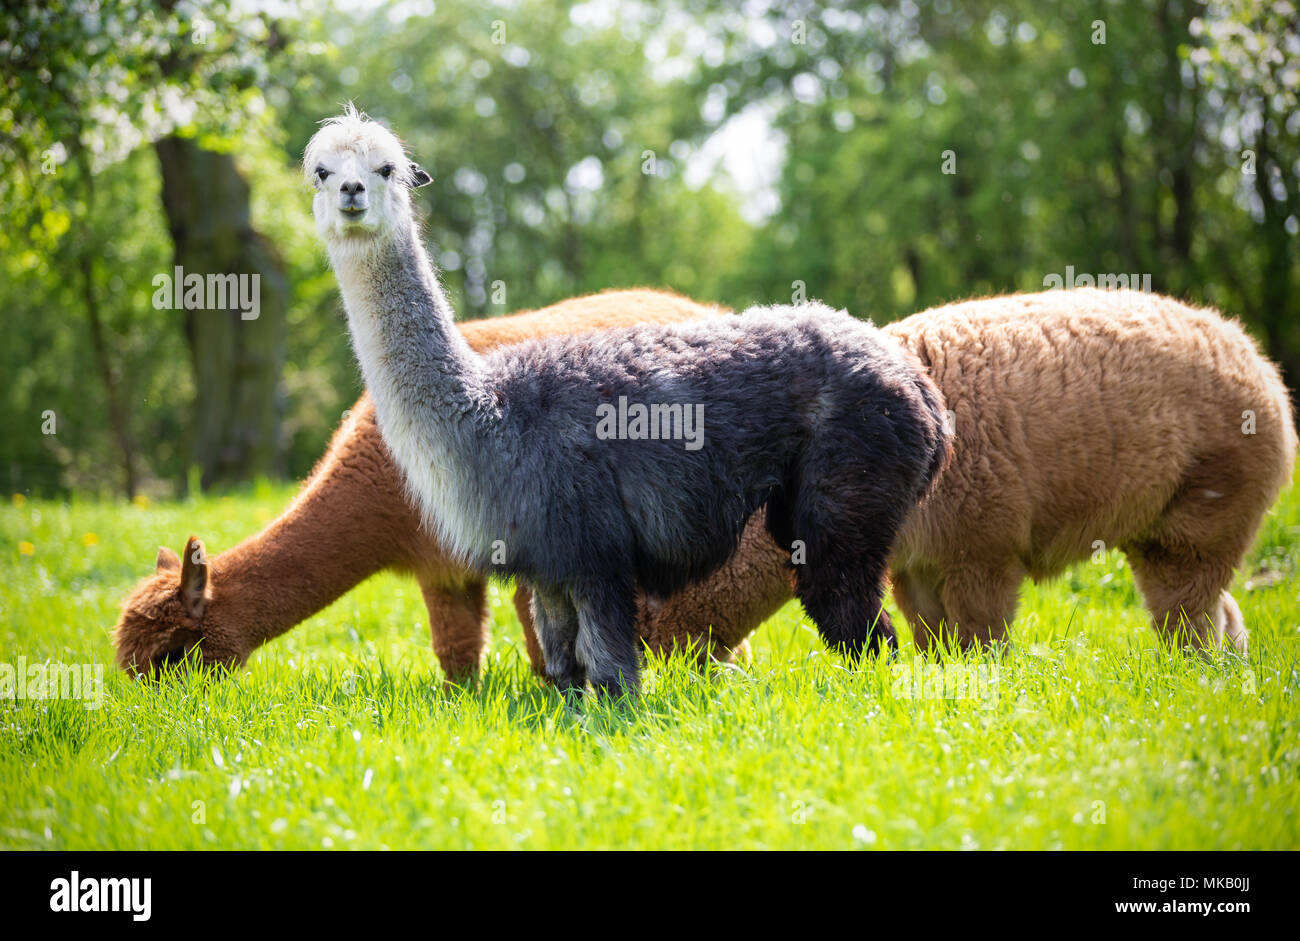 Alpacas while eating grass, South American mammals - Stock Image